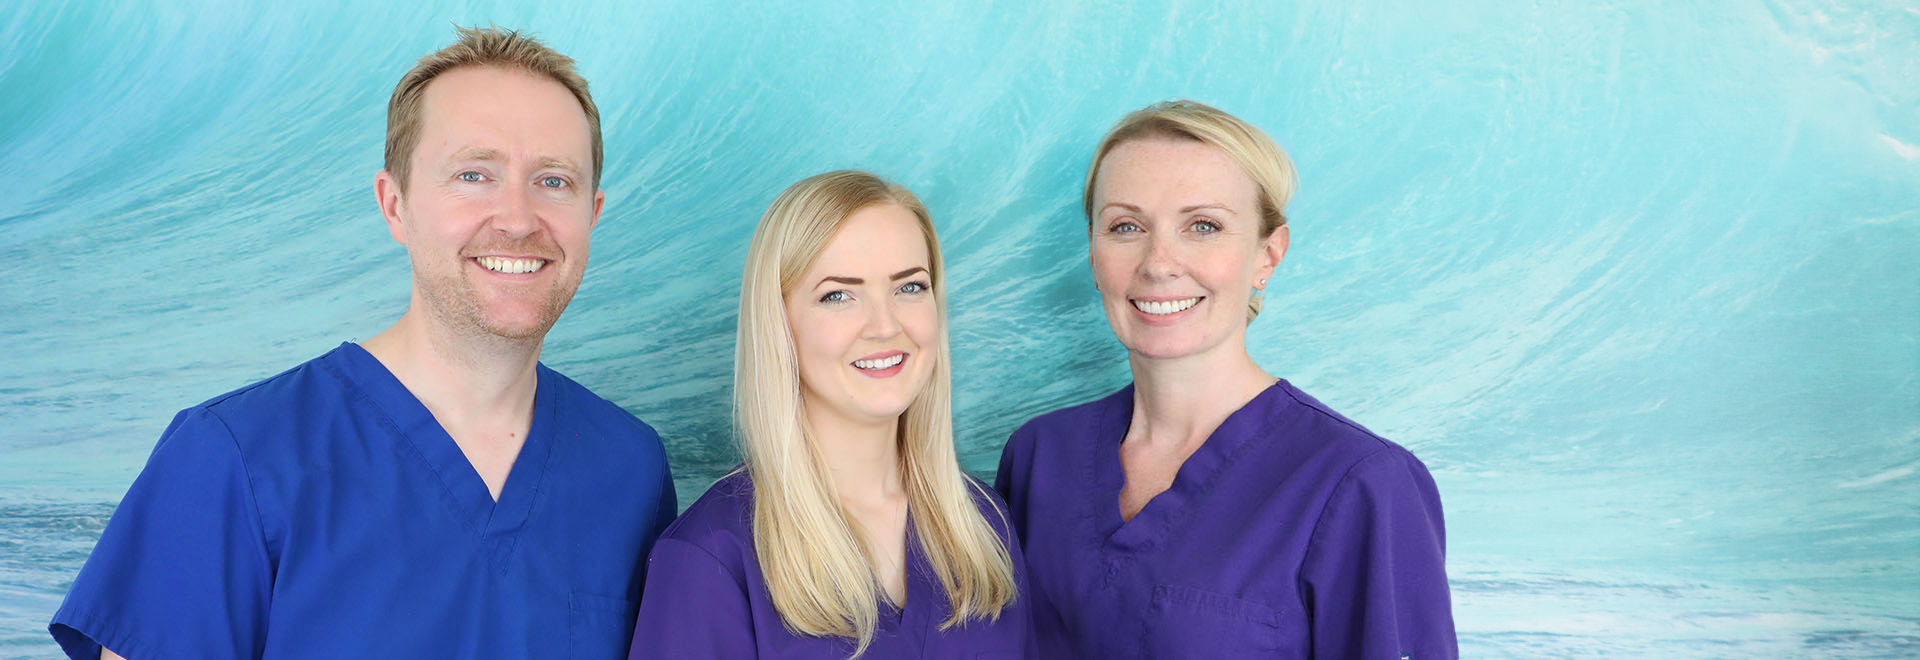 dentist in edinburgh team